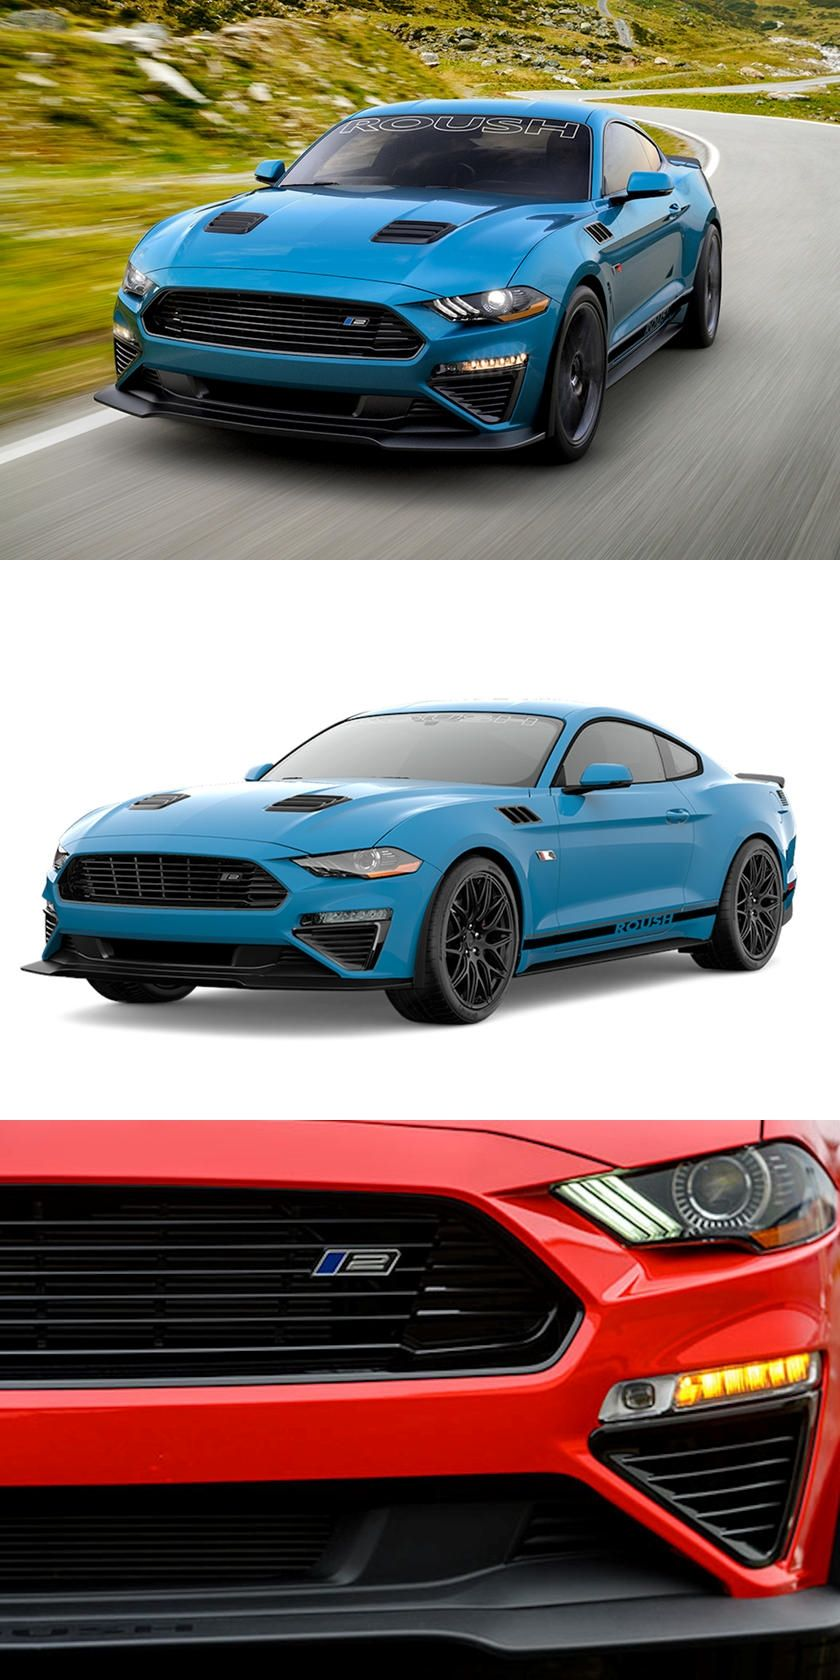 Say Hello To The 2020 Roush Stage 2 Mustang In 2020 Mustang